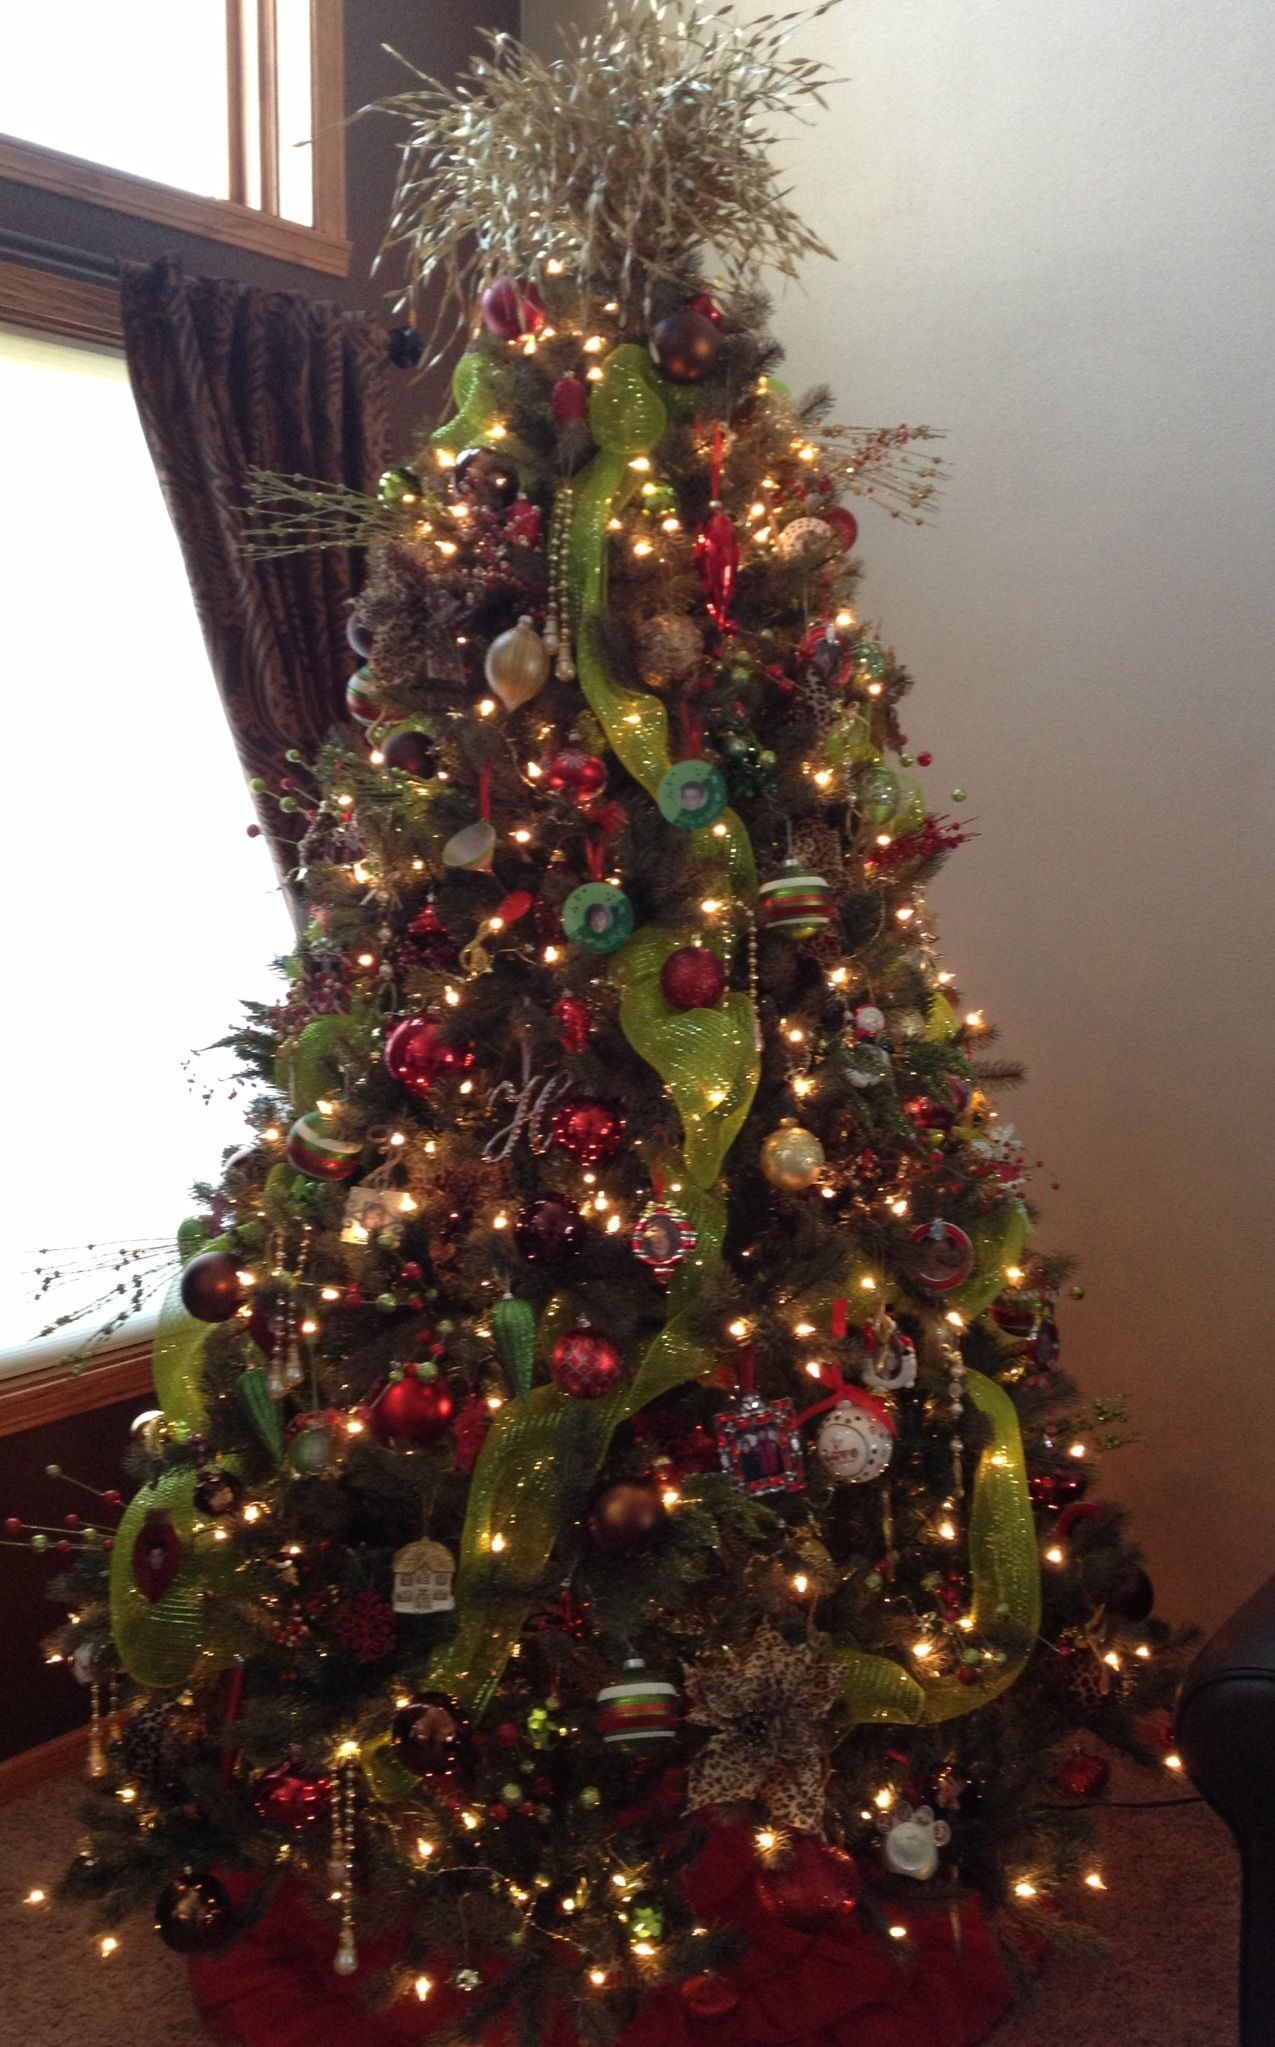 Christmas Tree In Red Green Brown And Leopard Christmas Tree Christmas Christmas Tree Decorations